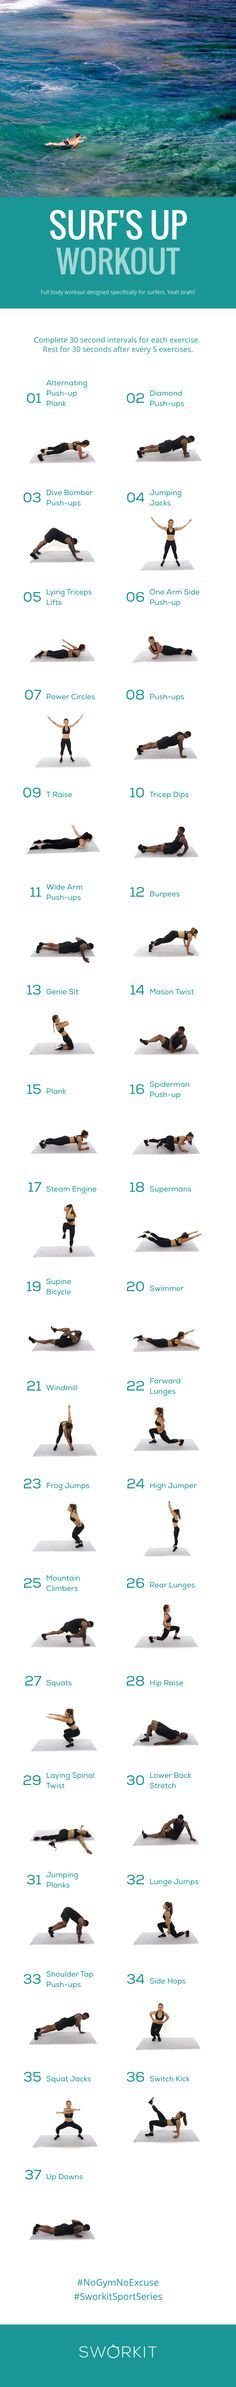 Surfer custom workout for Sworkit for iOS and Android. If you have the Sworkit app, you can import this workout directly into the app:Full body workout that strengthens arms, increases balance, and helps you reach your full potential. #SworkitSportSeries